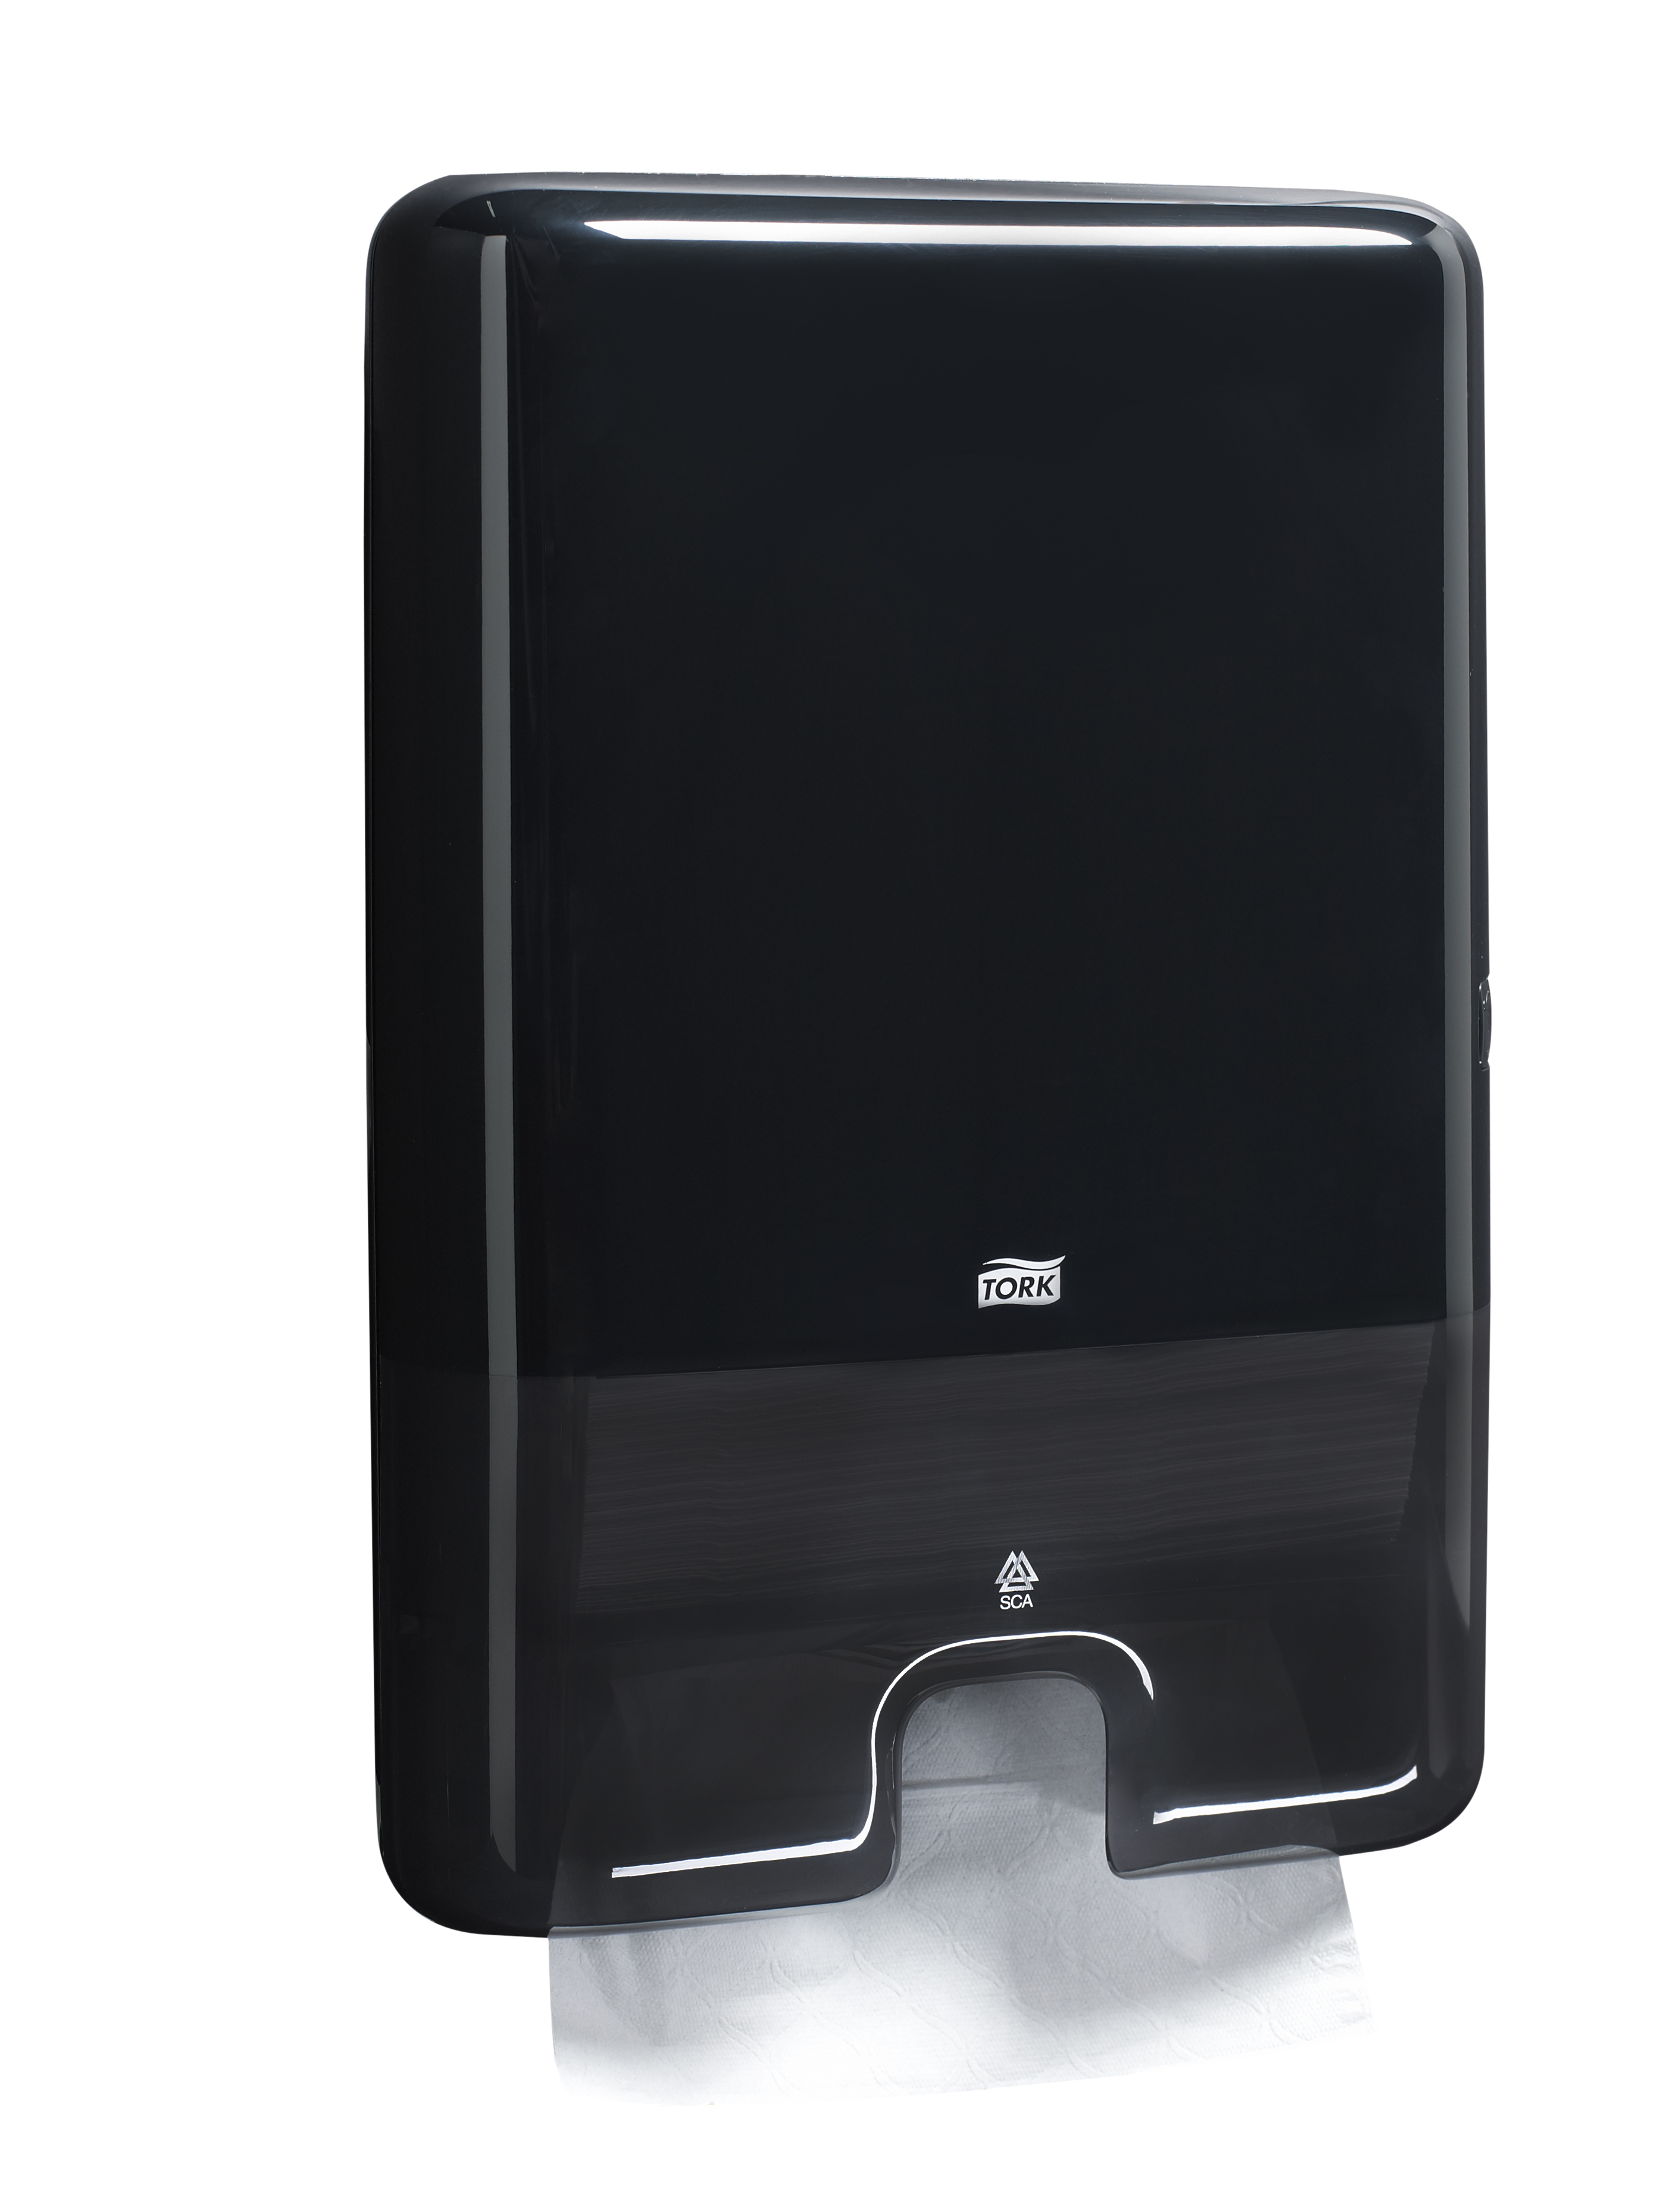 Tork Xpress Countertop Towel Dispenser : ... 552028 - Tork Elevation Xpress Hand Towel Interfold Dispenser, Black